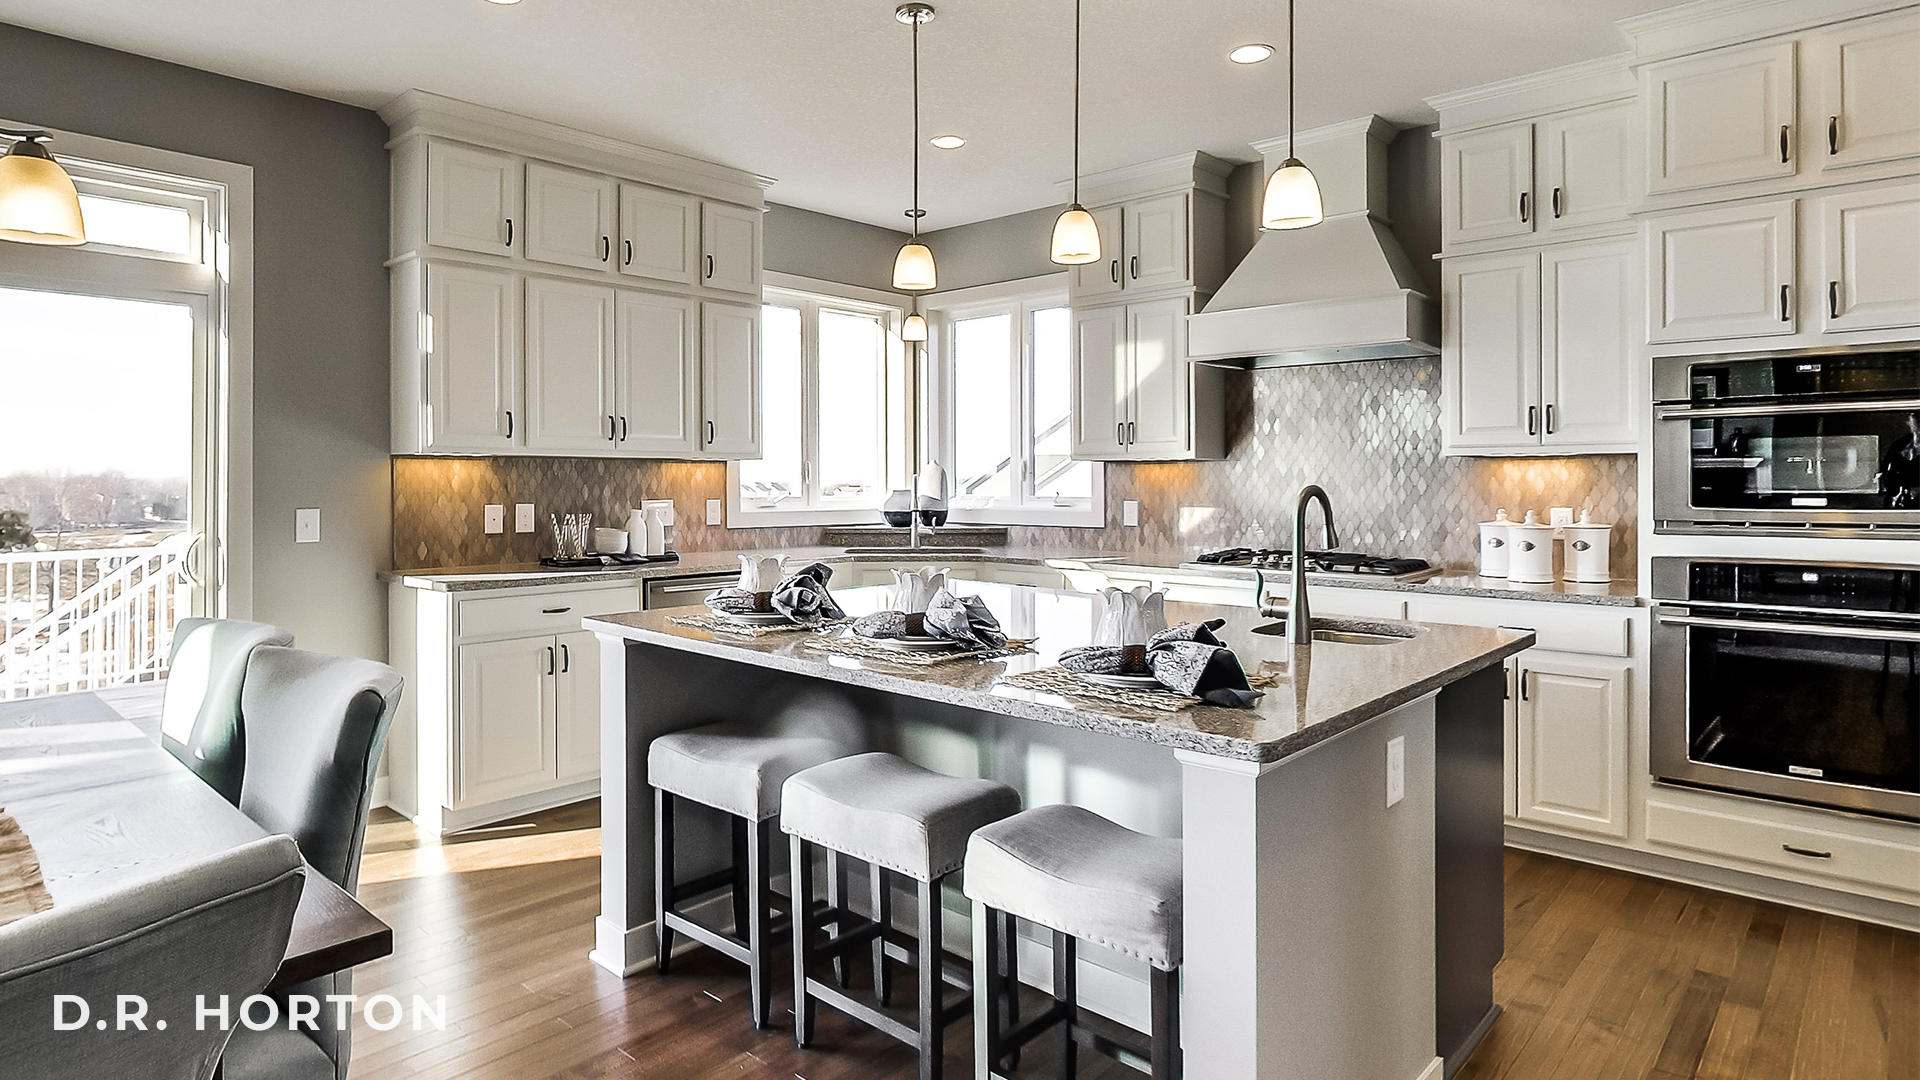 D R Horton On Twitter White Cabinets And Silver Accents Provide The Perfect Design For This Minnesota Kitchen